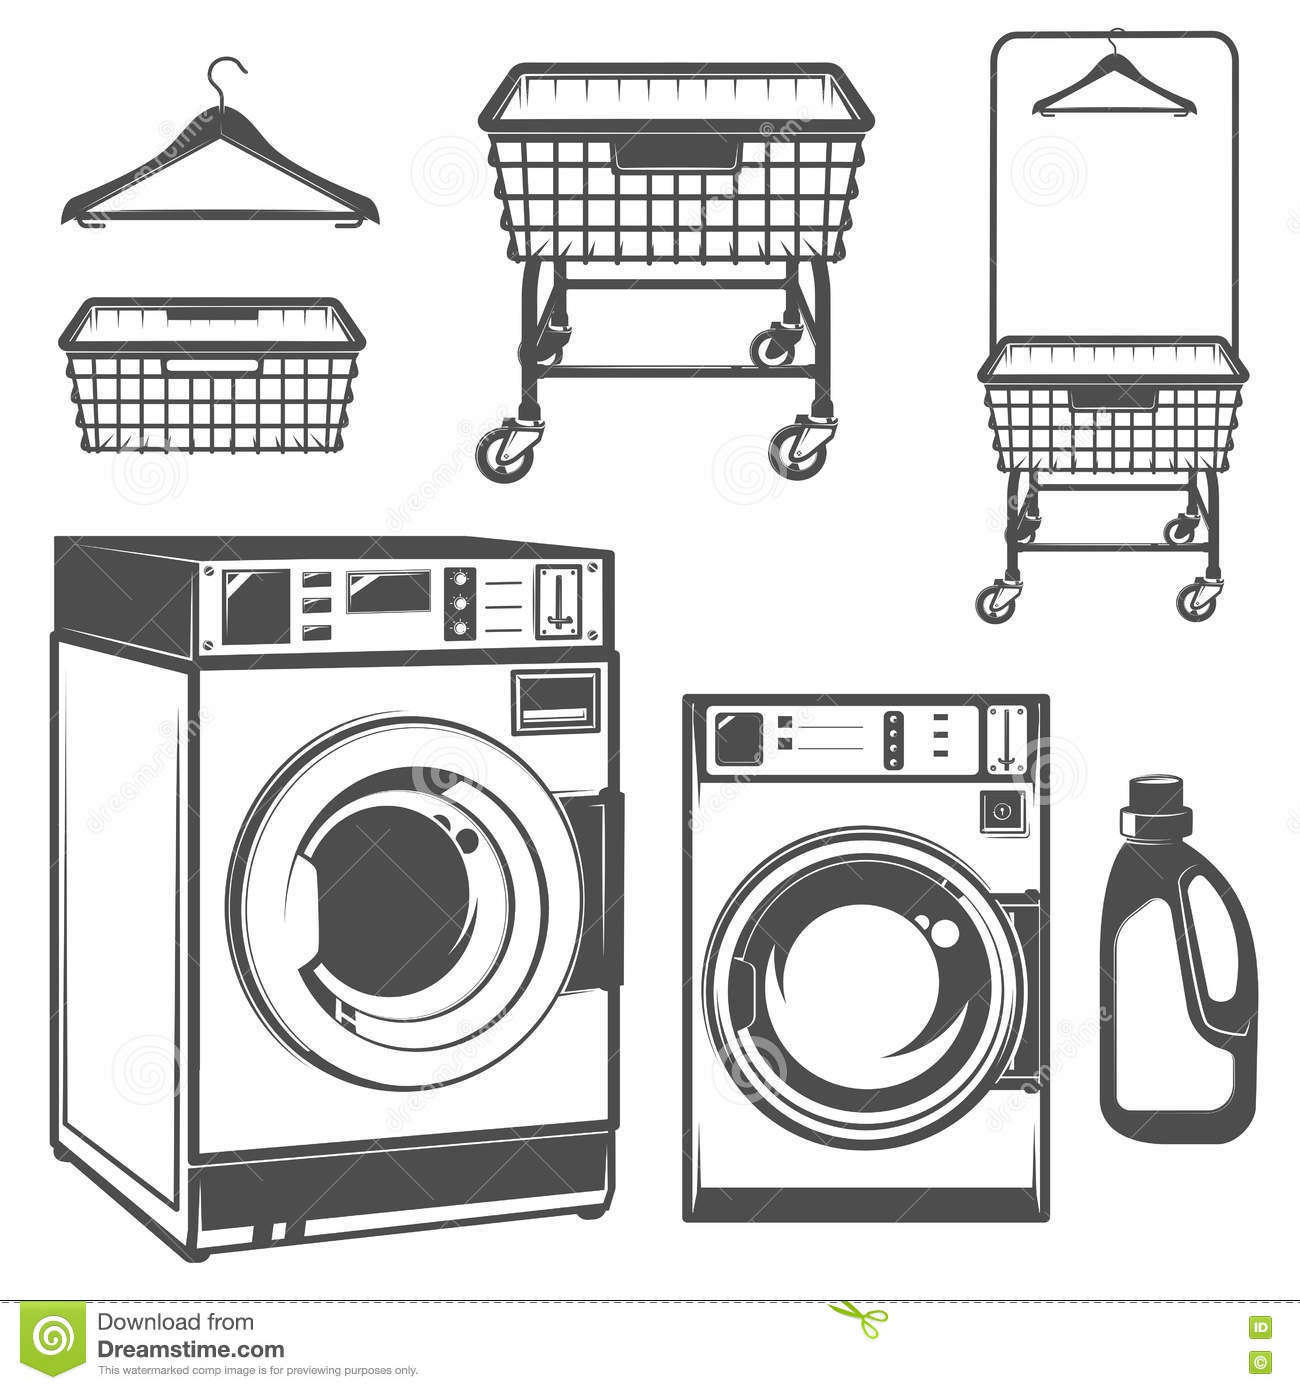 Laundromat Cartoons Illustrations Amp Vector Stock Images